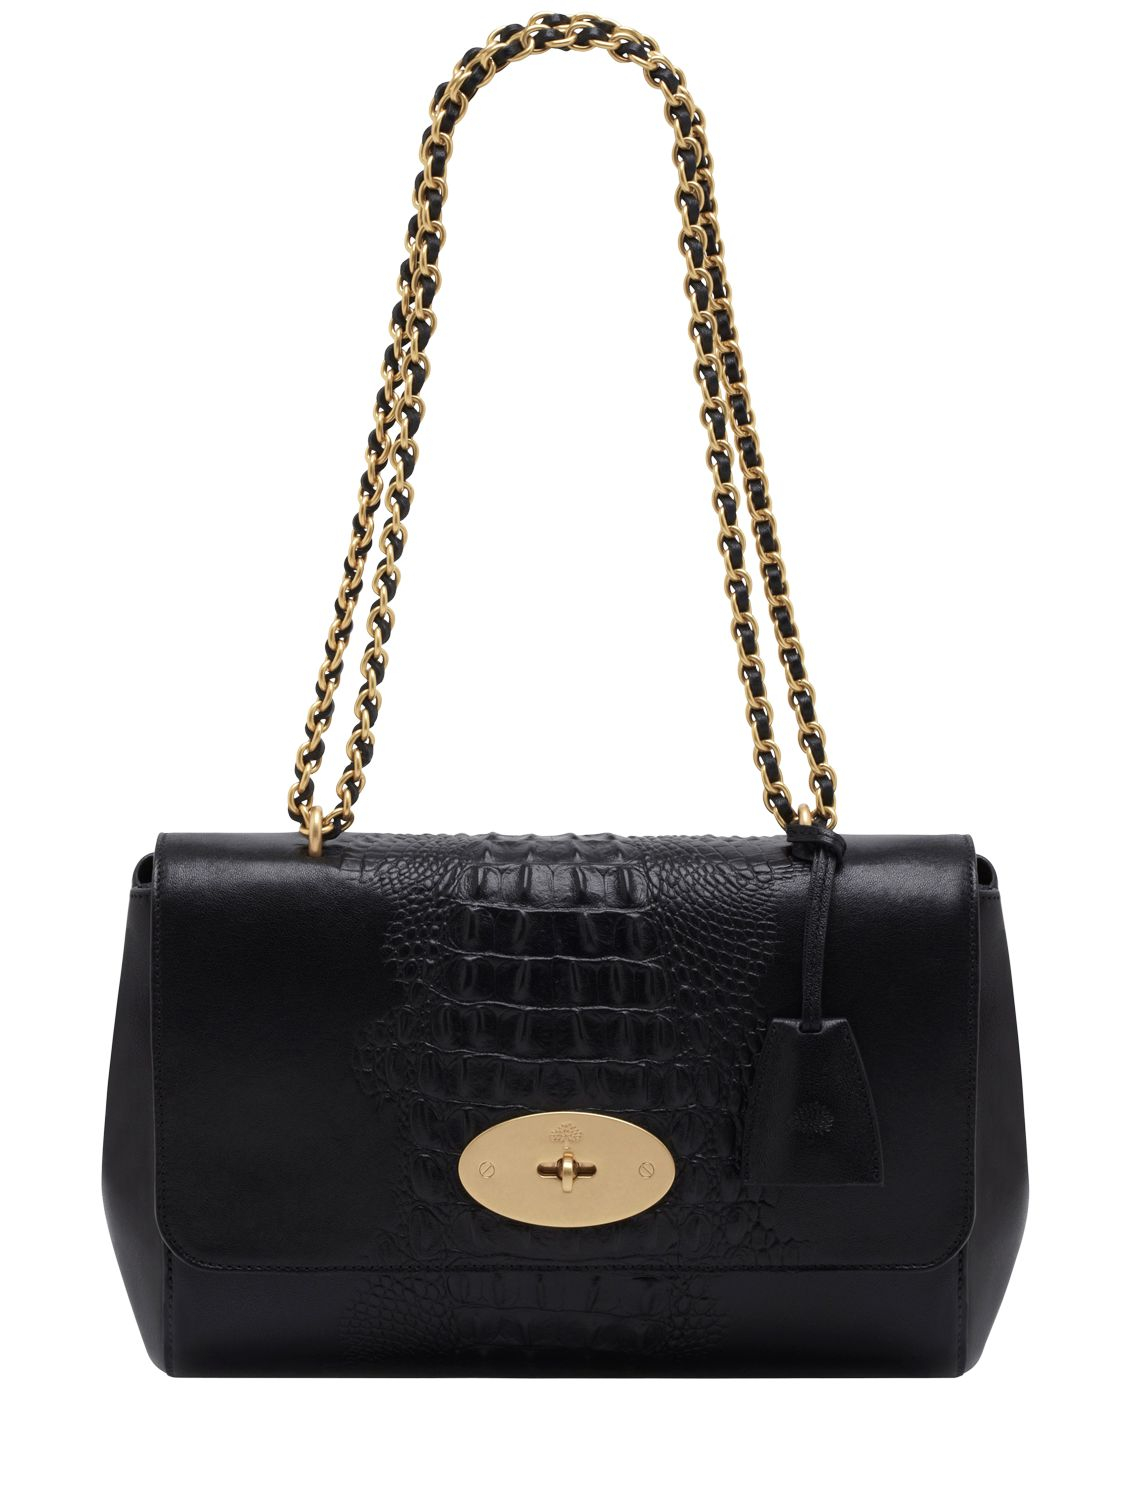 6fbb2c6f8 discount code for mulberry lily croc 930e3 8b4a4